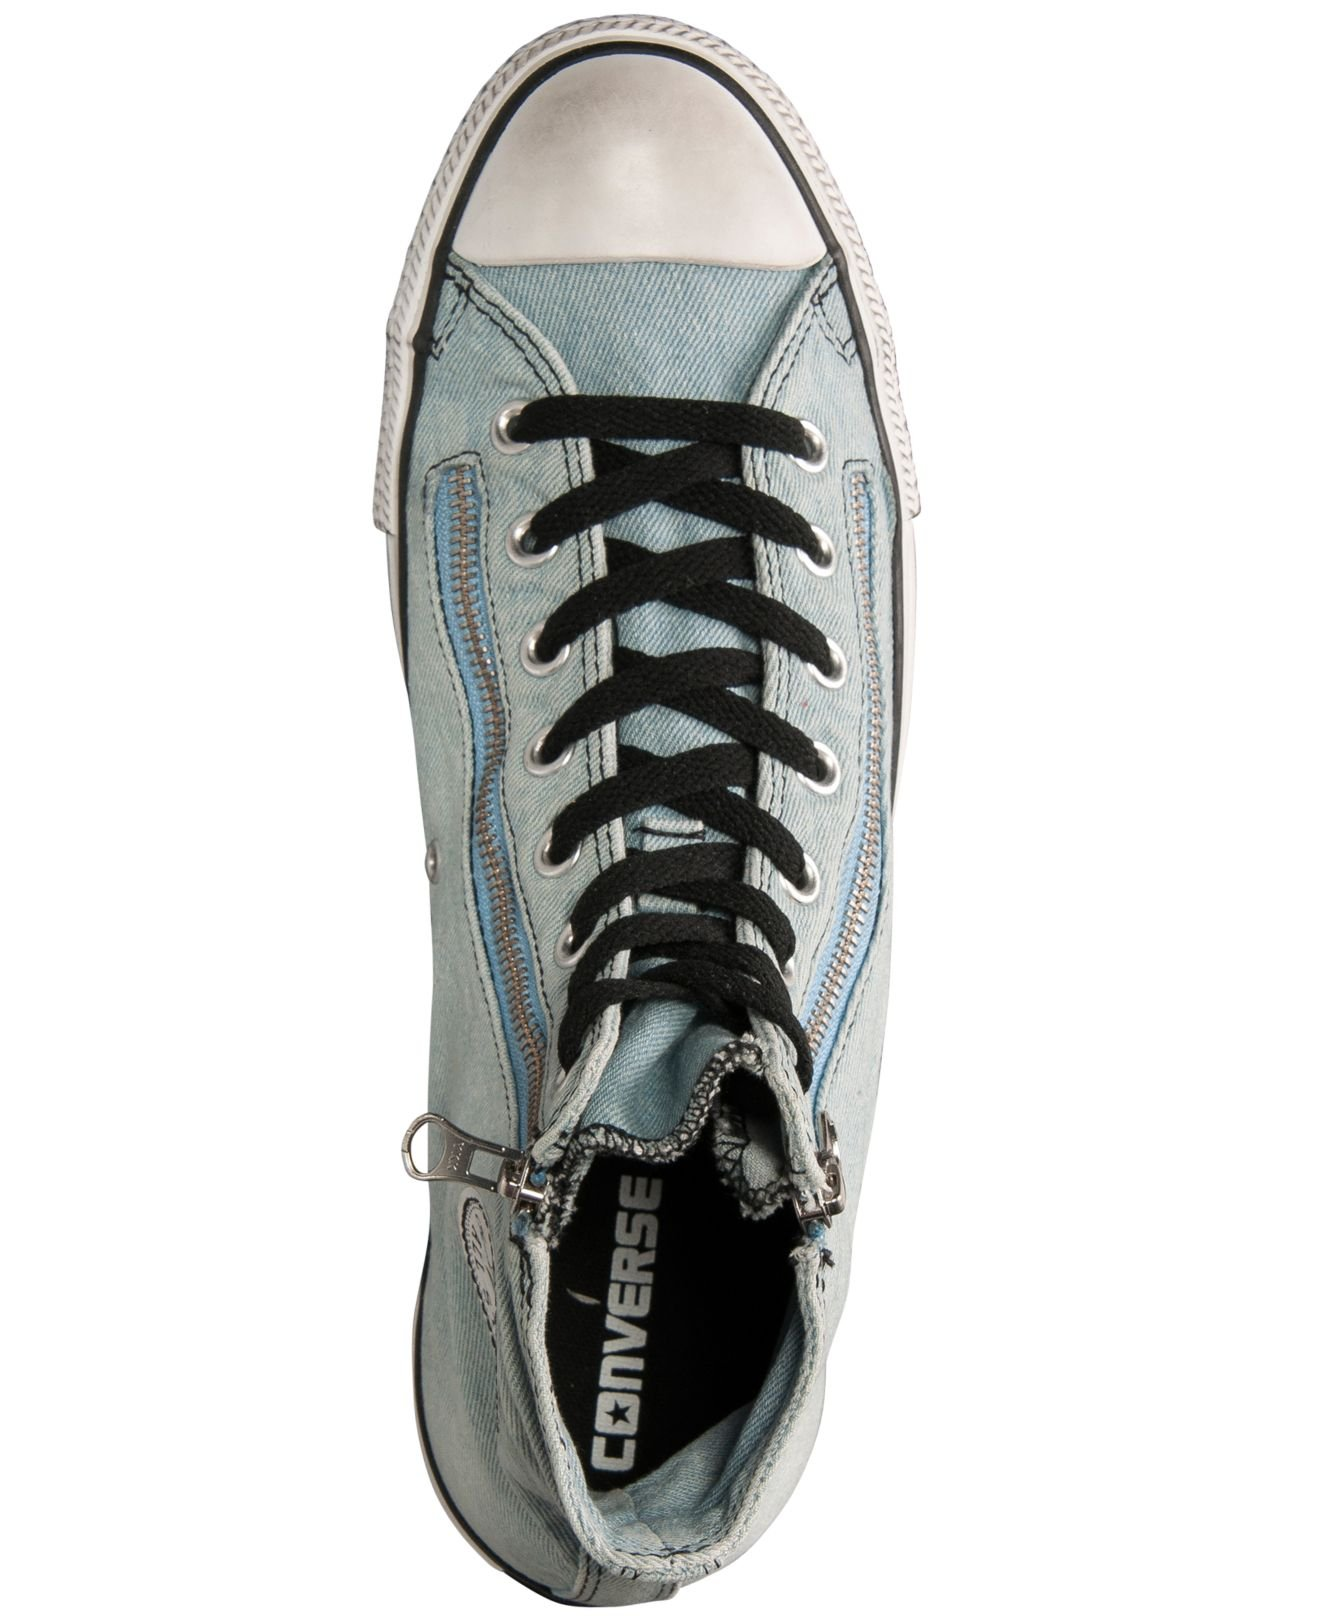 26b37c0700fc Lyst - Converse Men S Chuck Taylor All Star Double Zip Casual ...